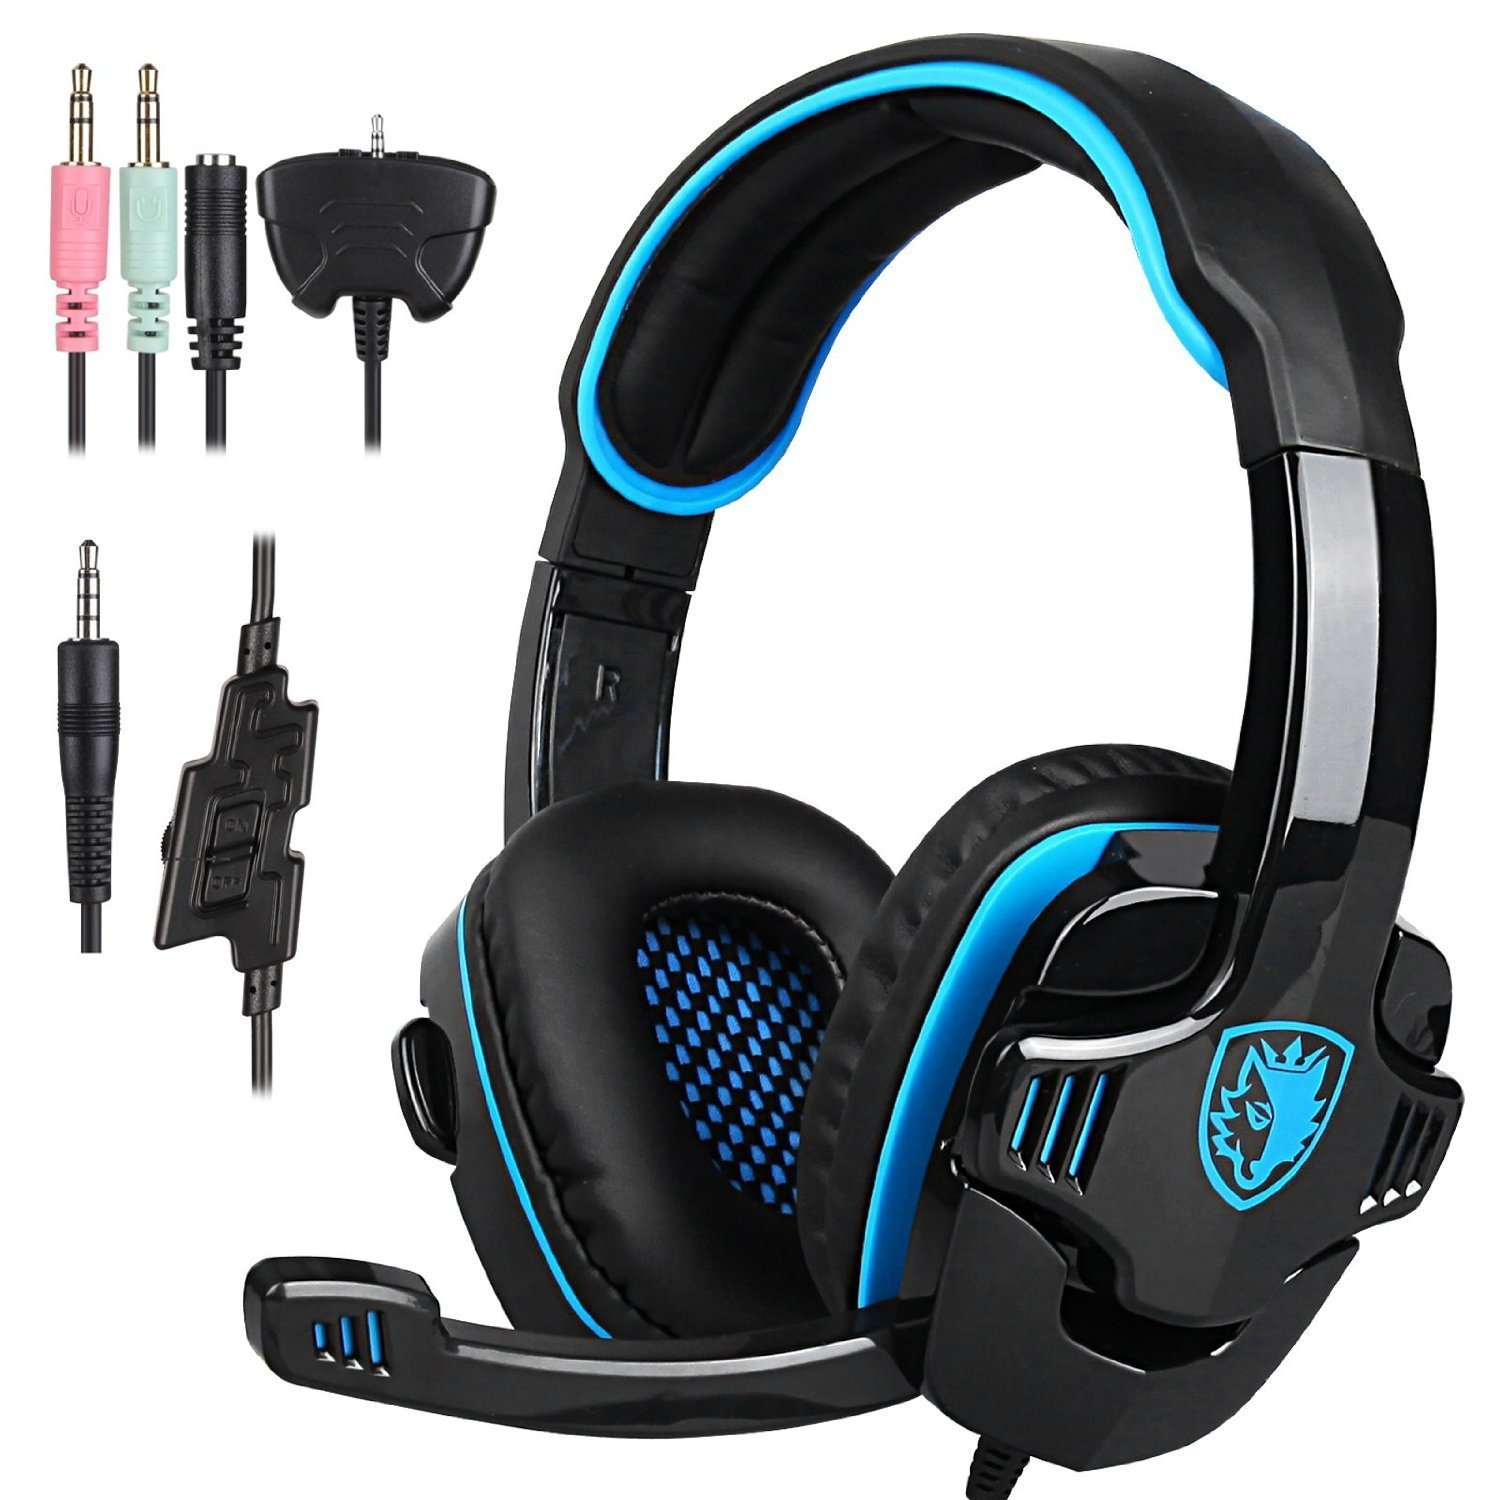 Sades SA-738 Top Gaming Headset